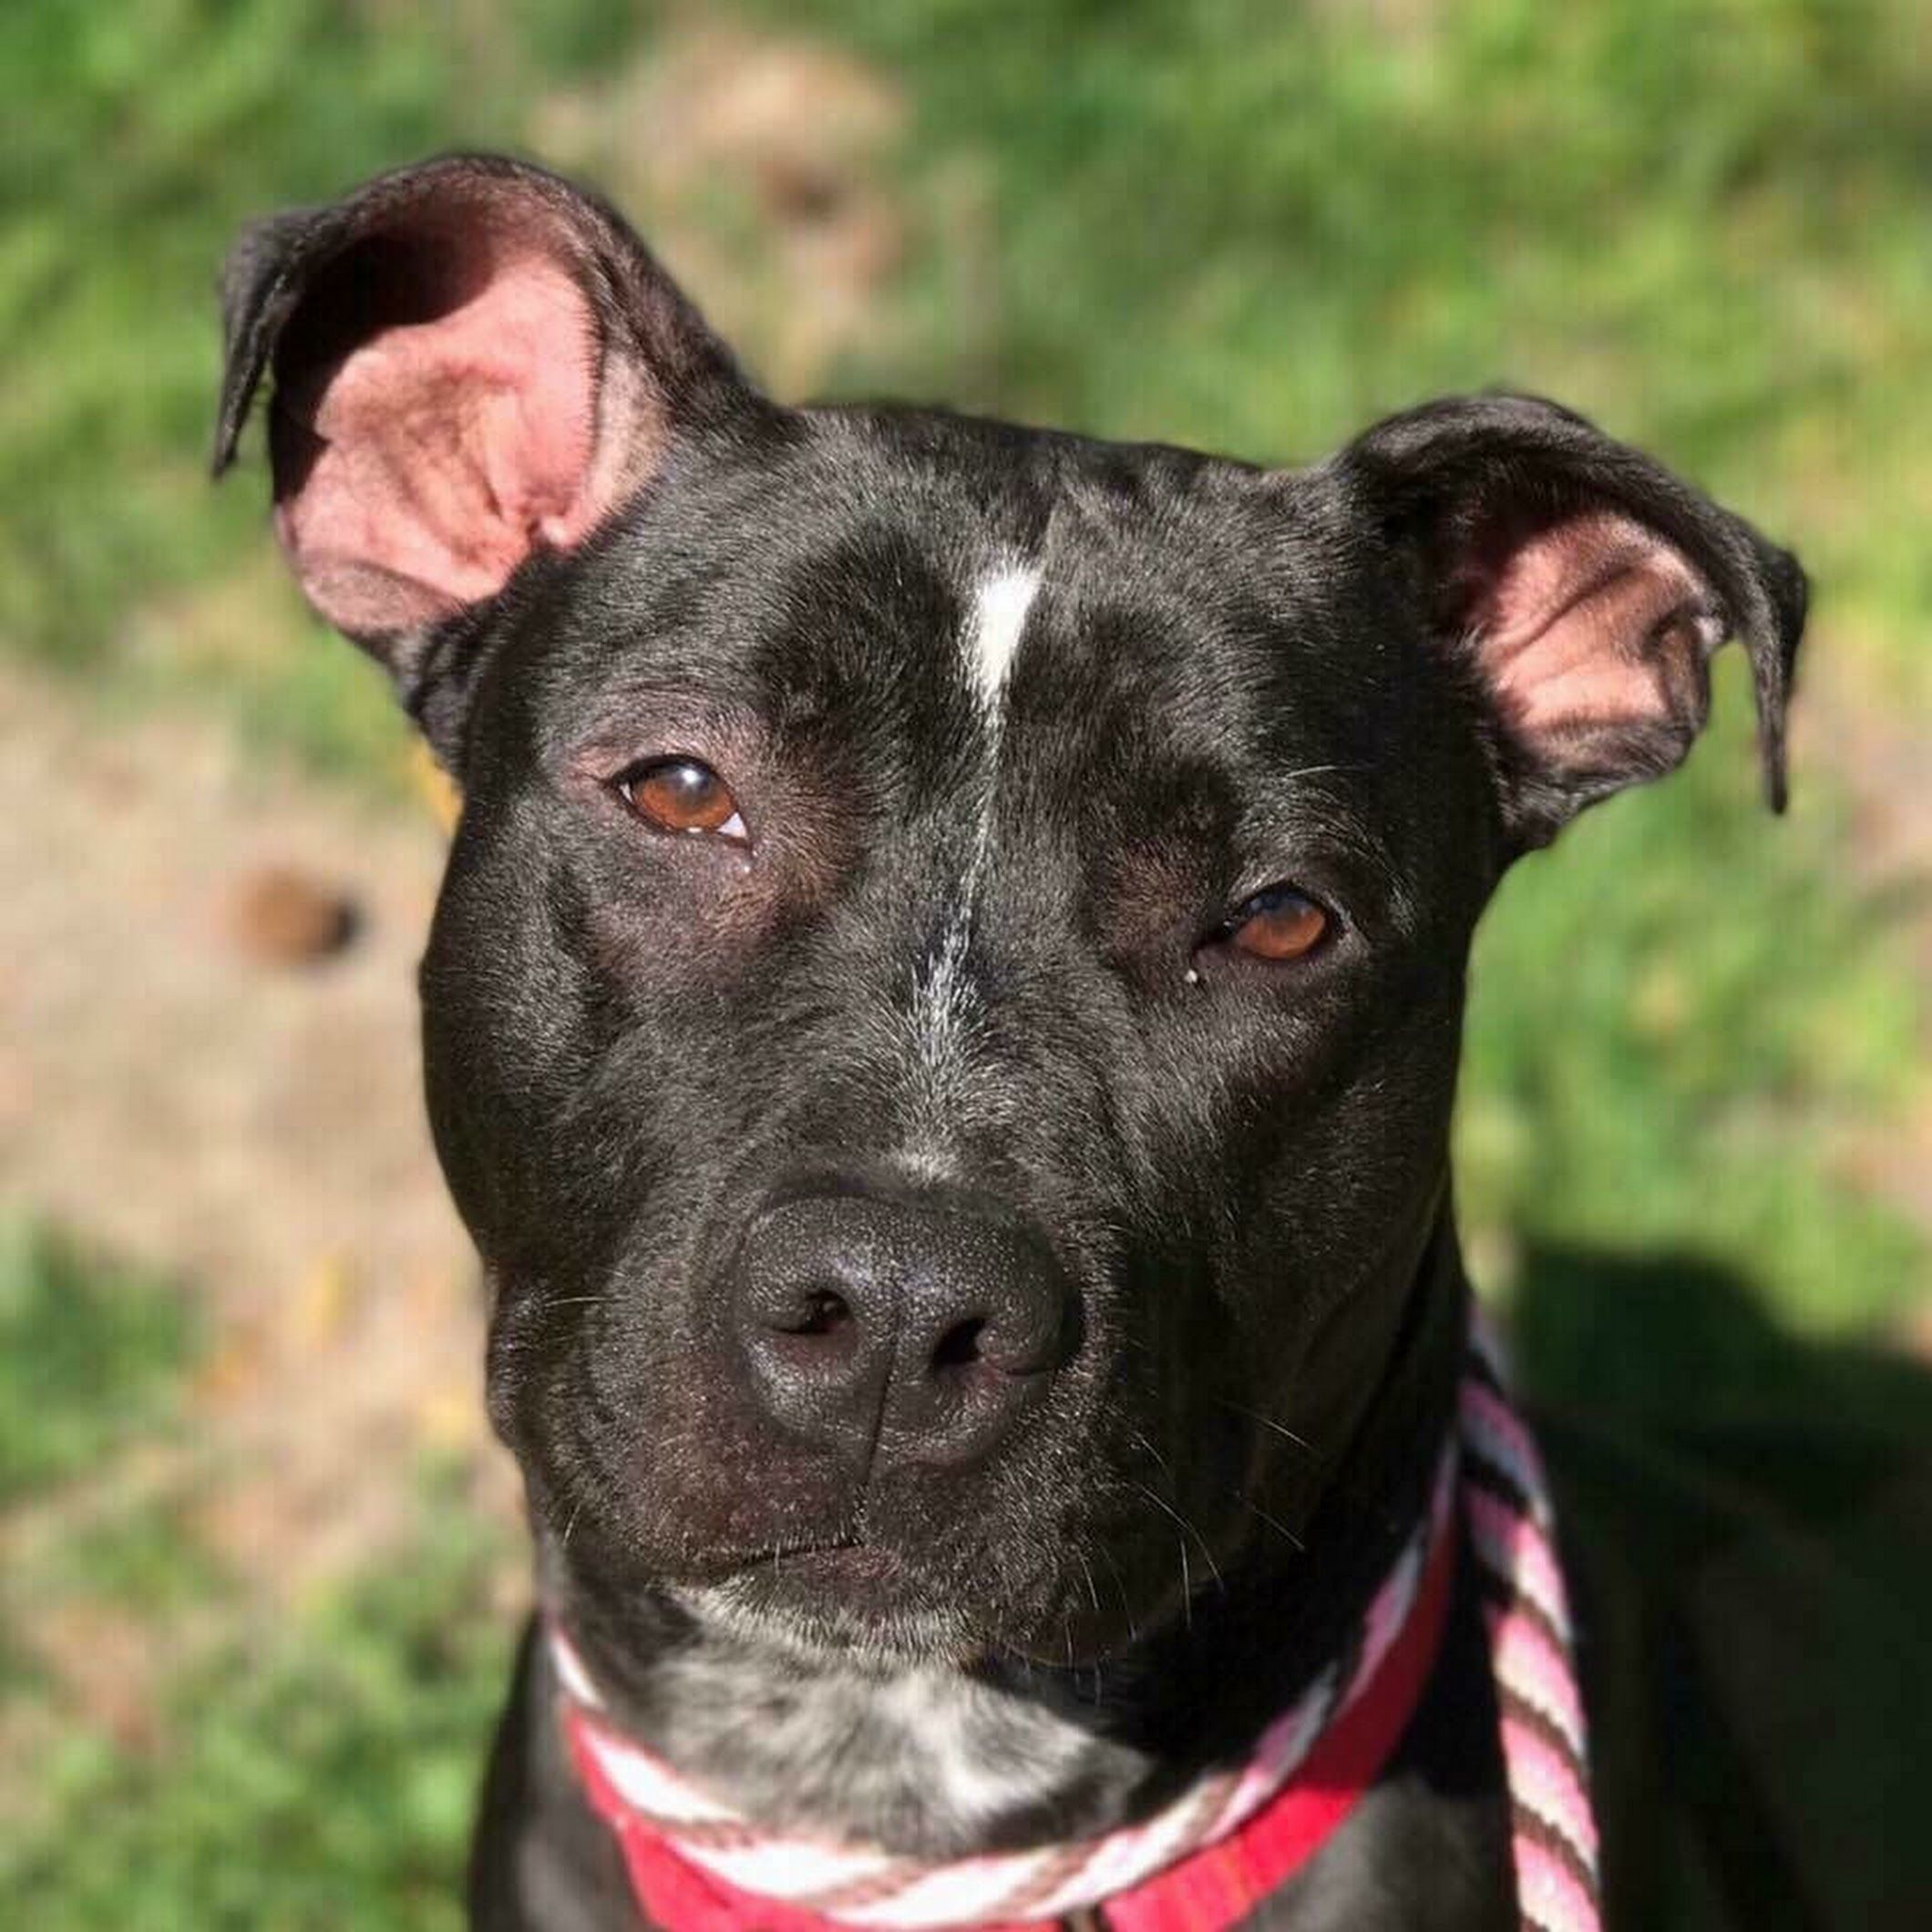 Another sweet girl goes unnoticed in a crowded shelter